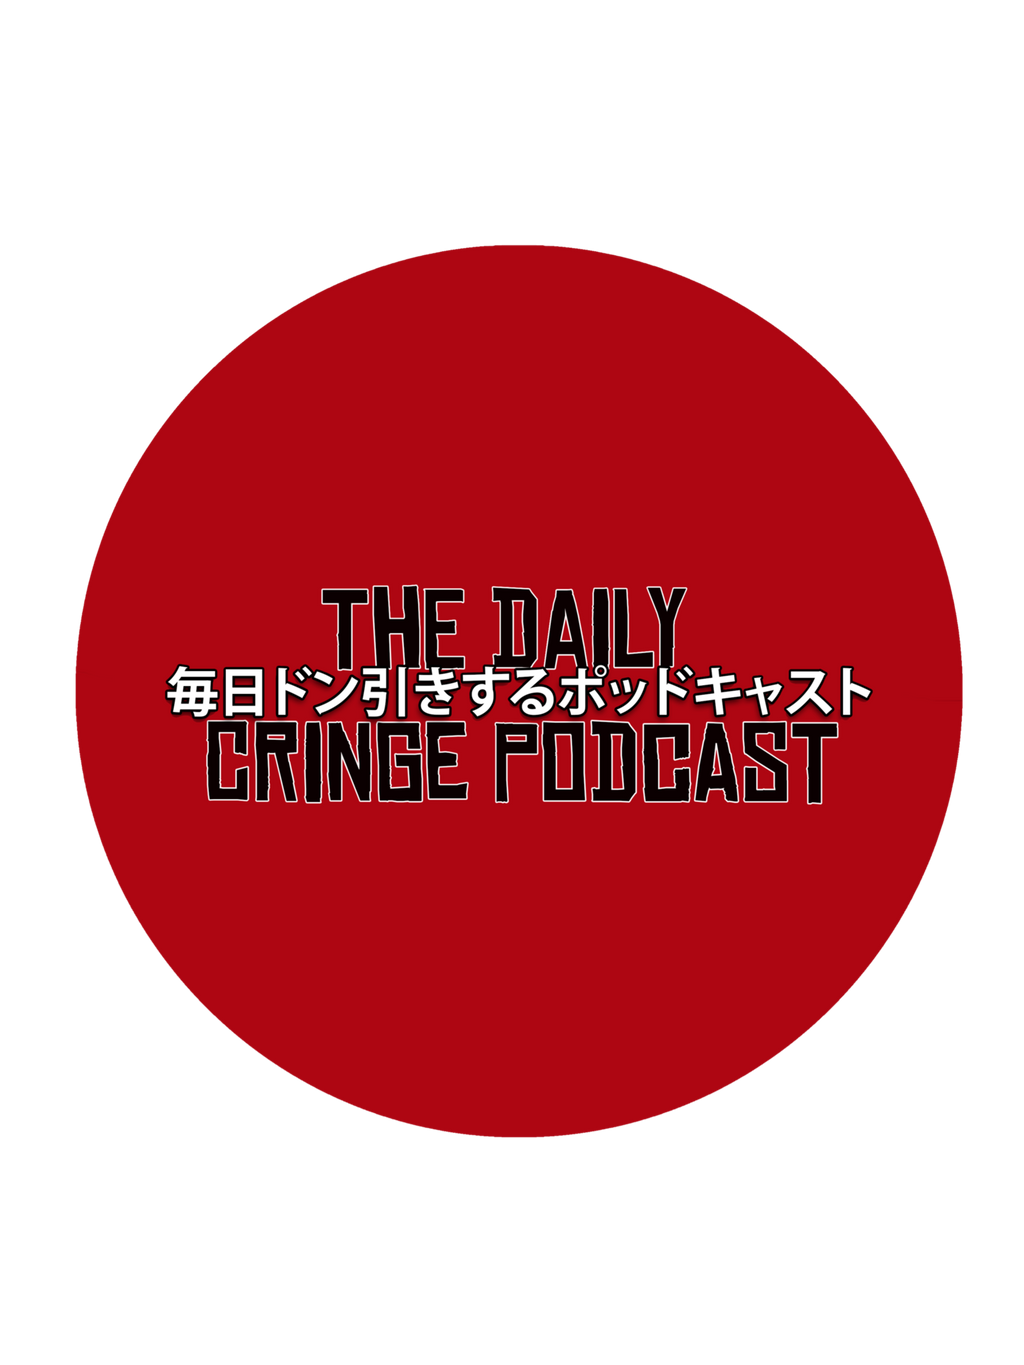 Men's Daily Cringe Podcast American Apparel Tee